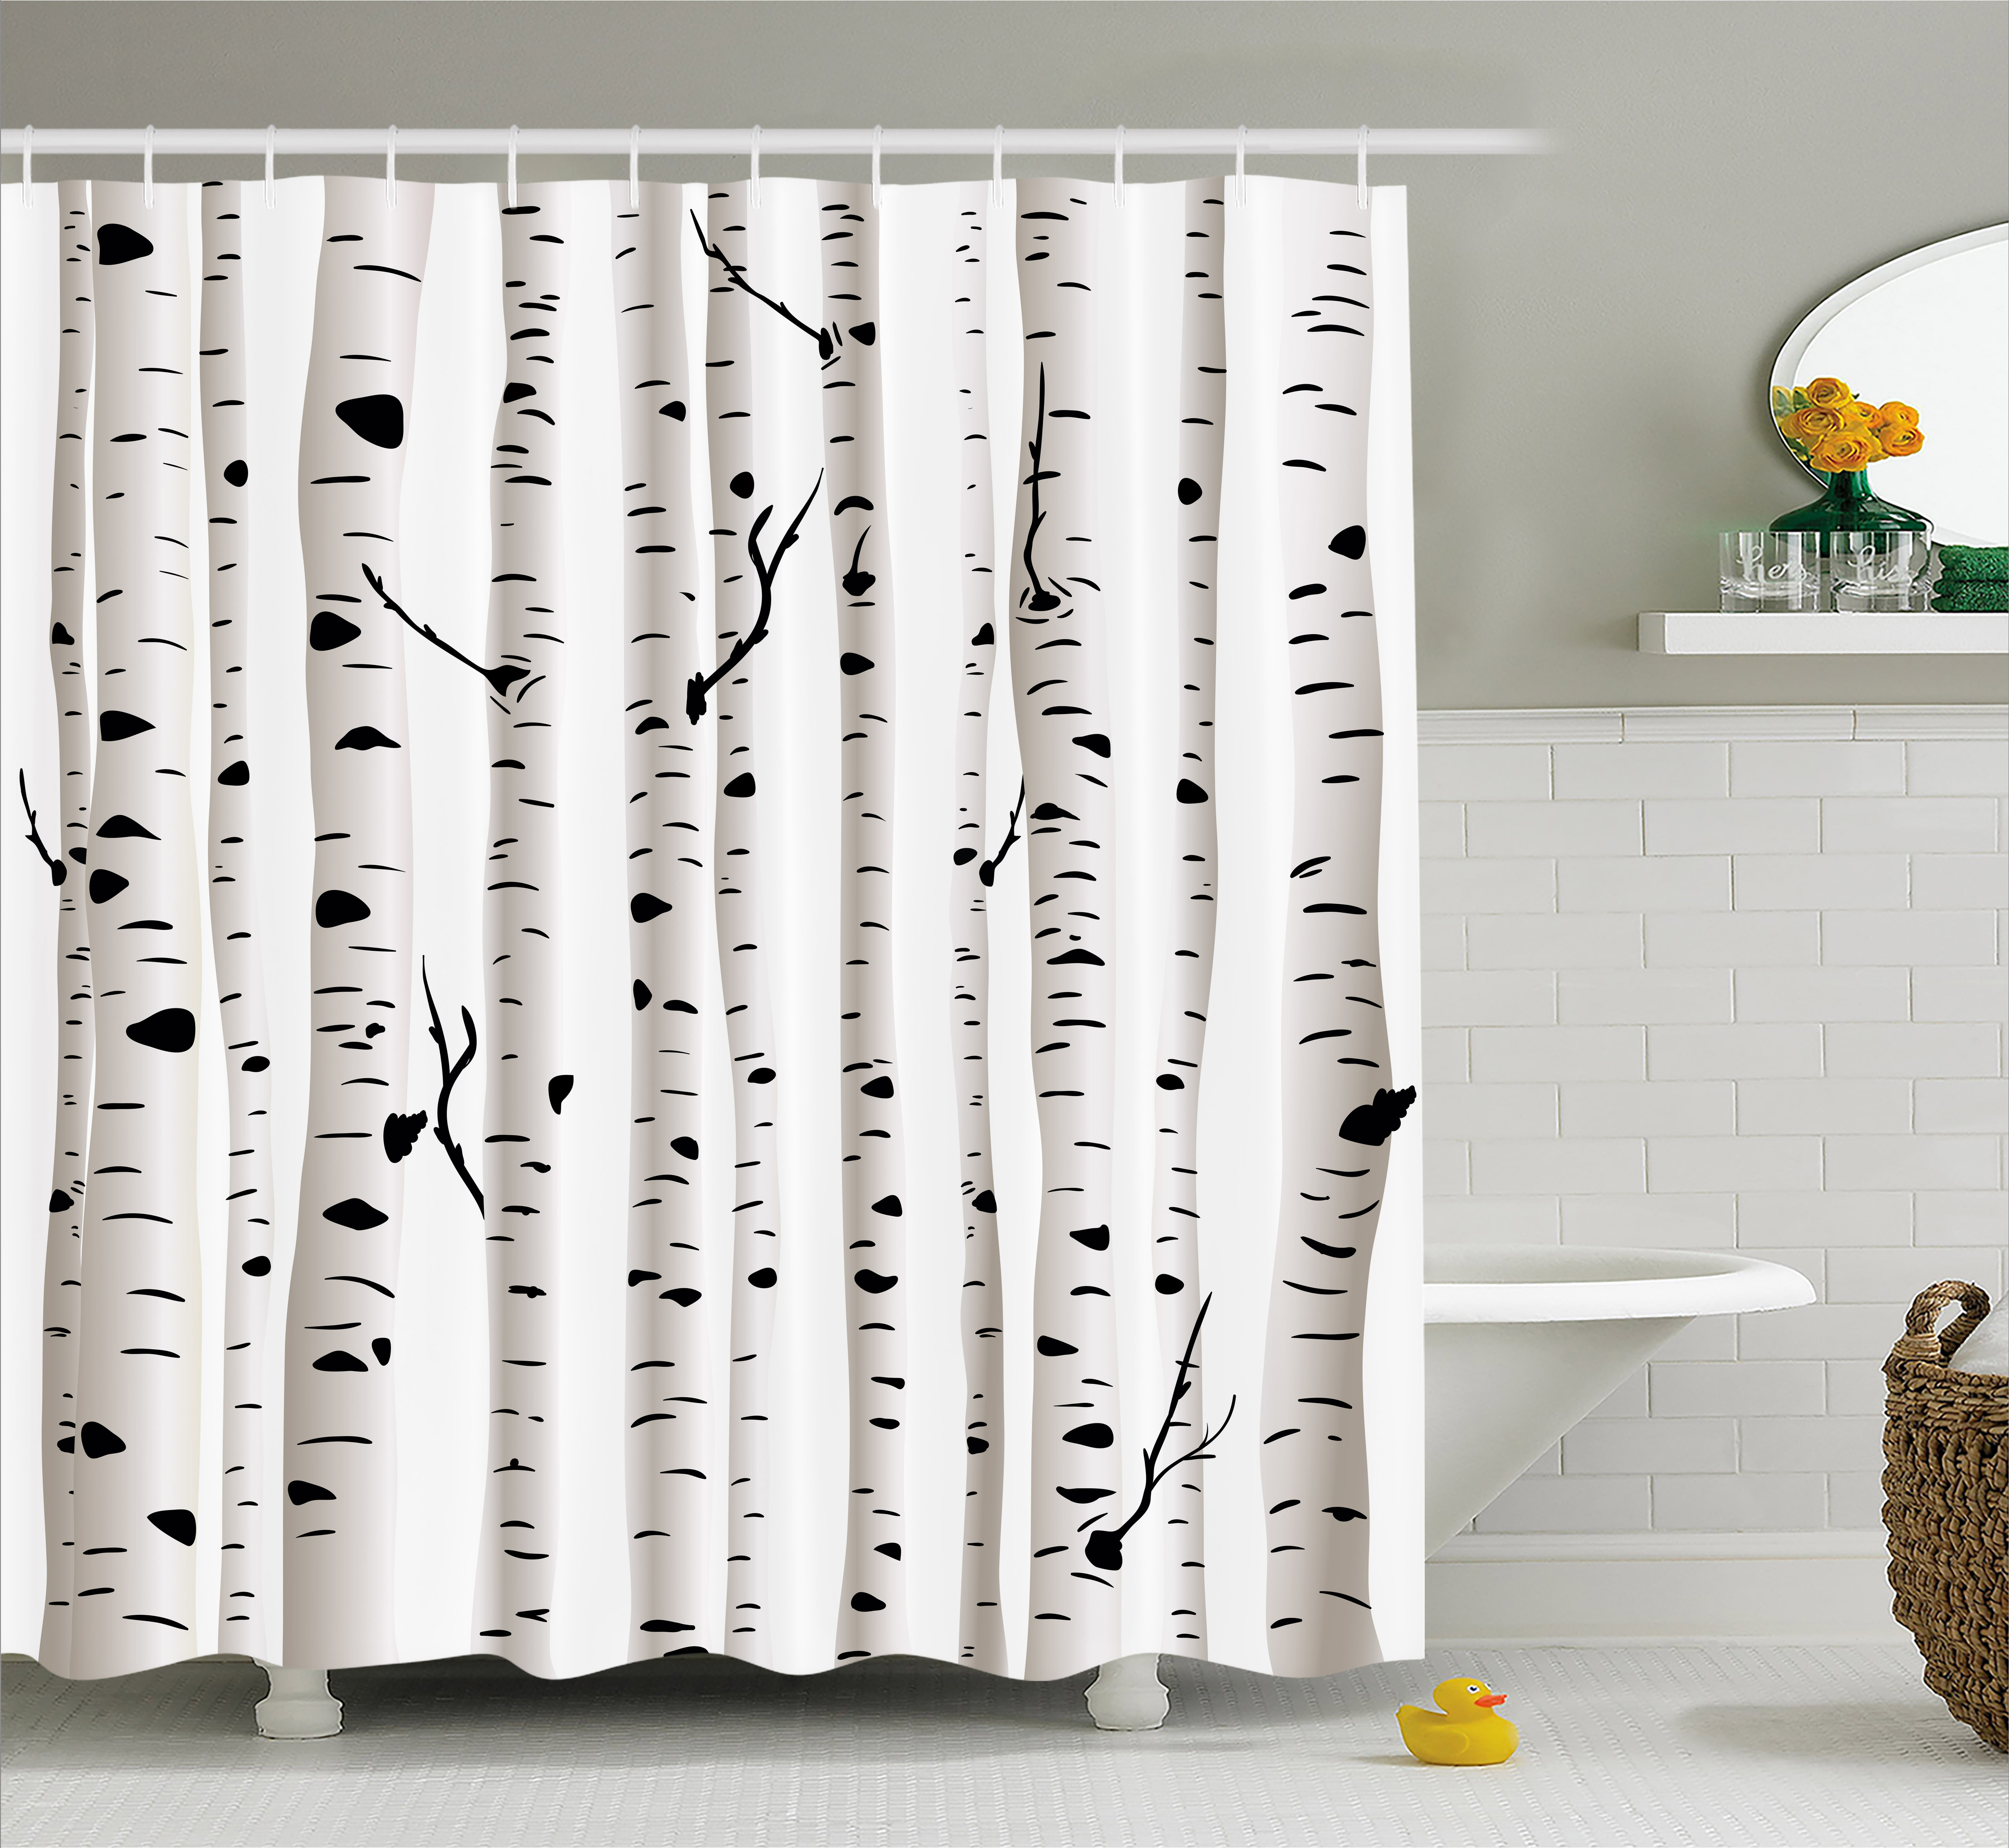 Nice Birch Tree Shower Curtain, Forest Seasonal Nature Woodland Leafless  Branches Grove Botany Illustration, Fabric